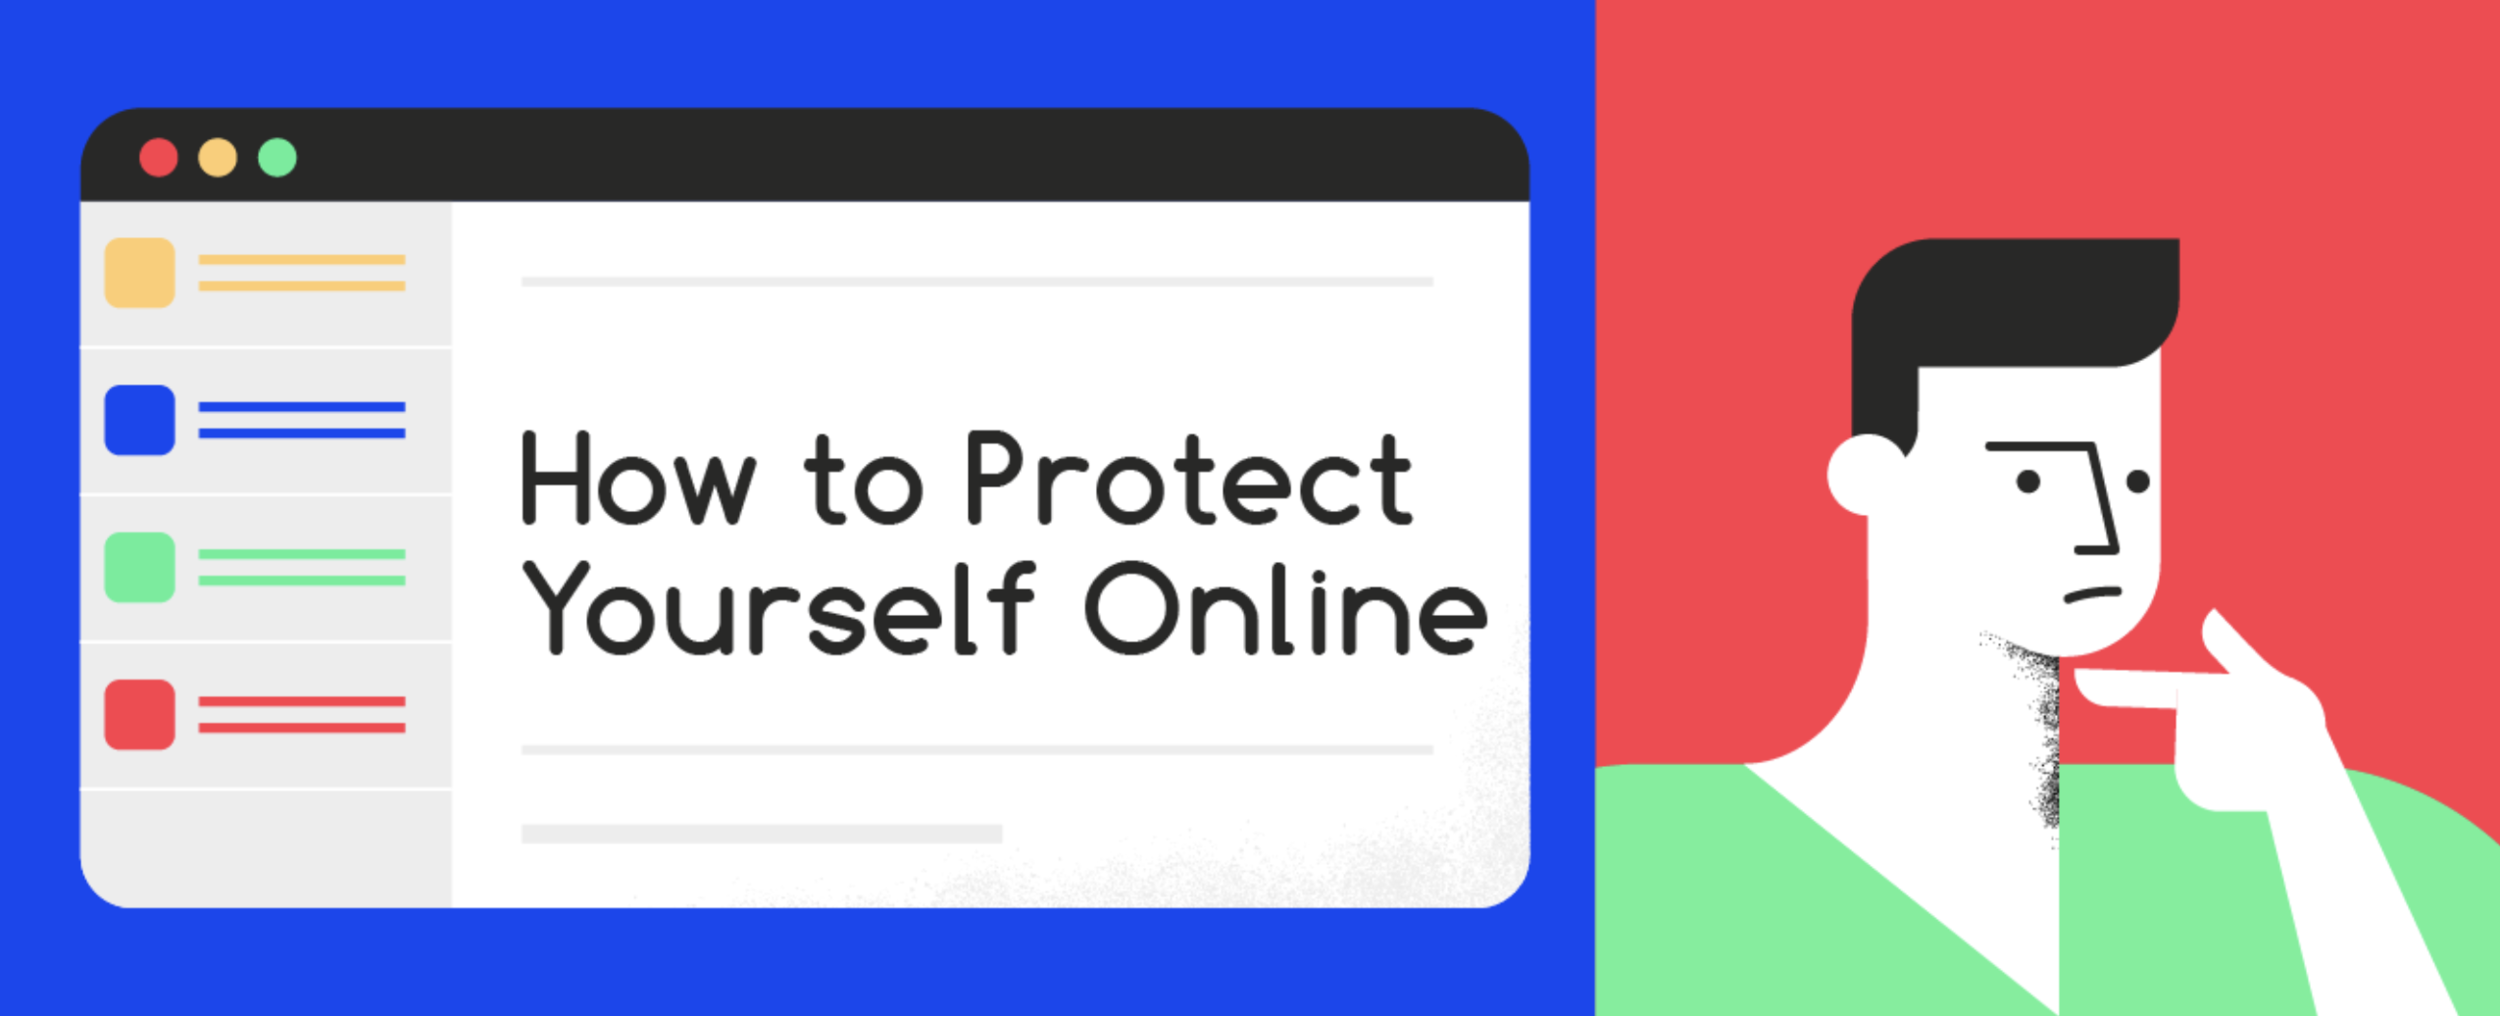 HowtoProtectYourselfOnline.png